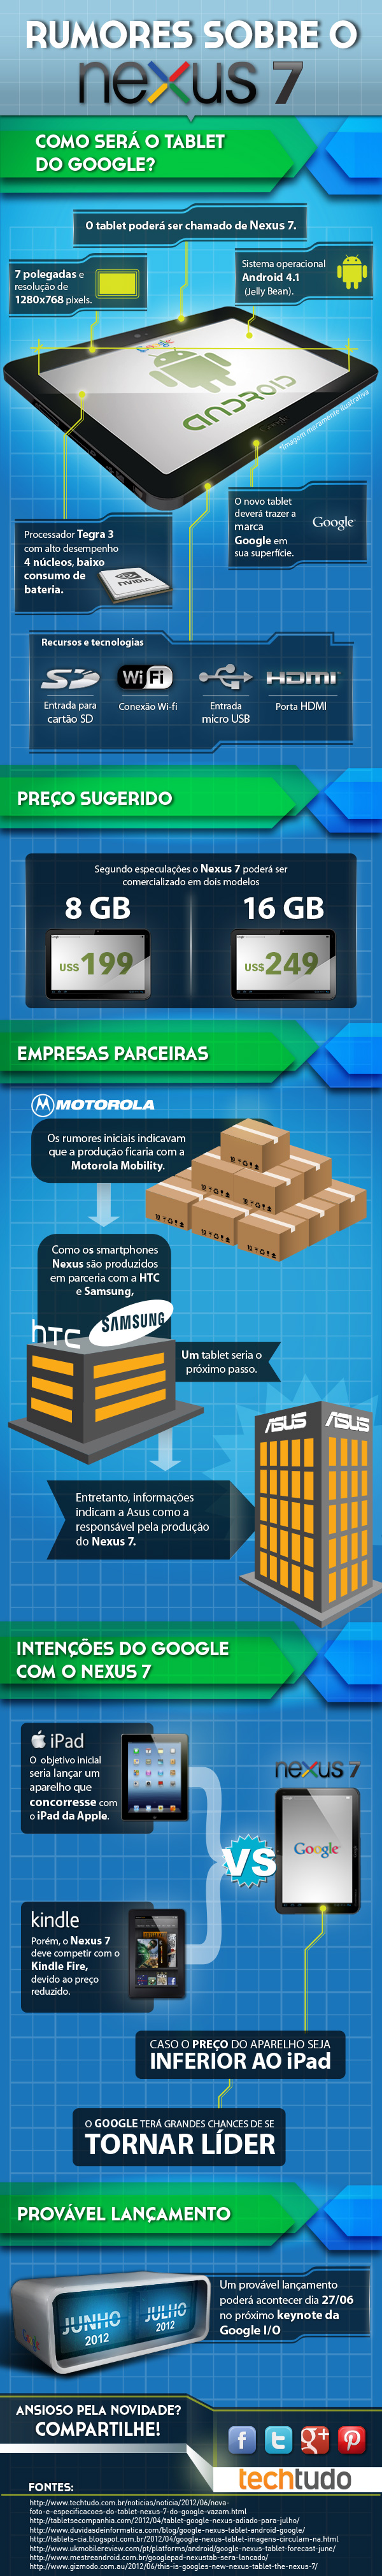 Infográfico de rumores sobre o Nexus 7, o tablet do Google (Foto: TechTudo)